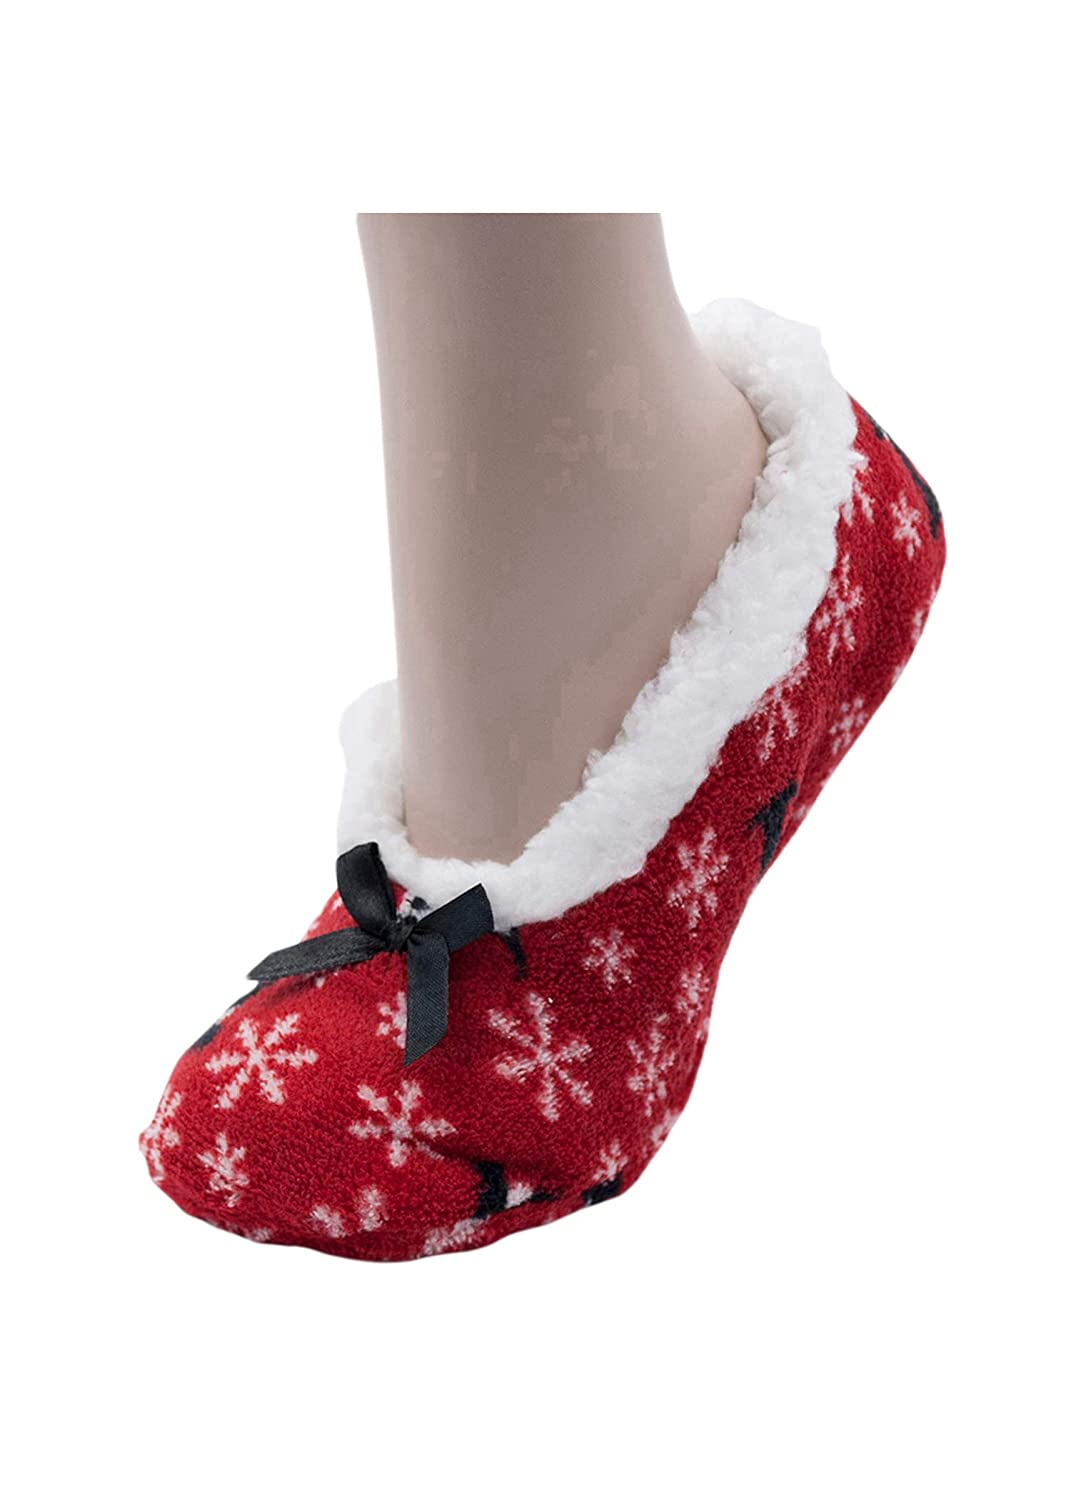 Womens Fun Novelty Fur Knitted Slippers with Grippers Sherpa Lined or Unlined Various Styles